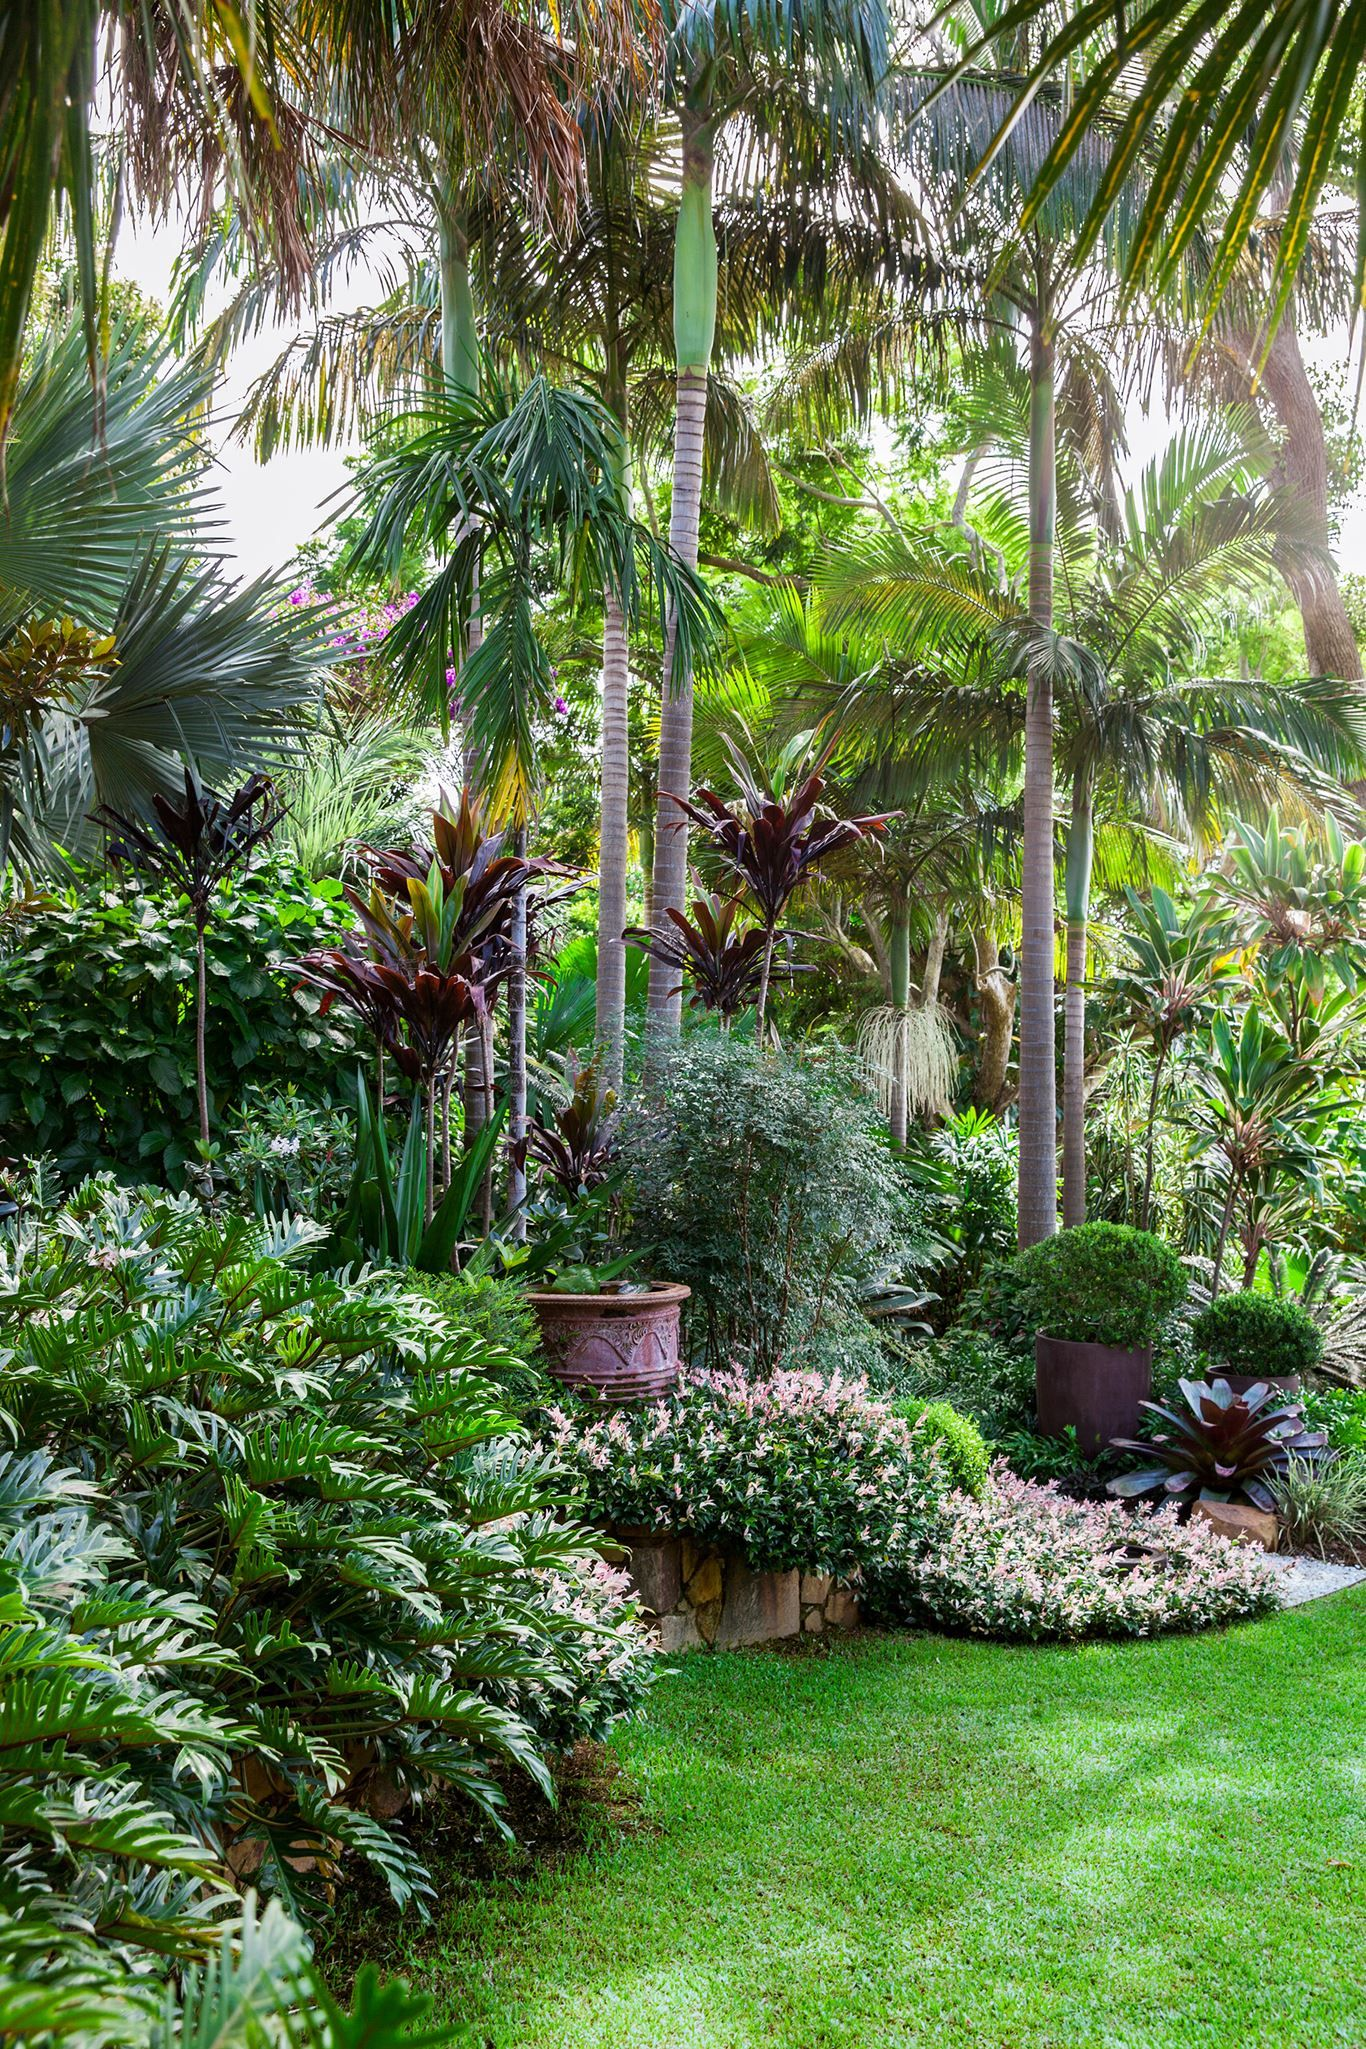 10 Step By Step To Build Backyard Garden Ideas With Vegetables